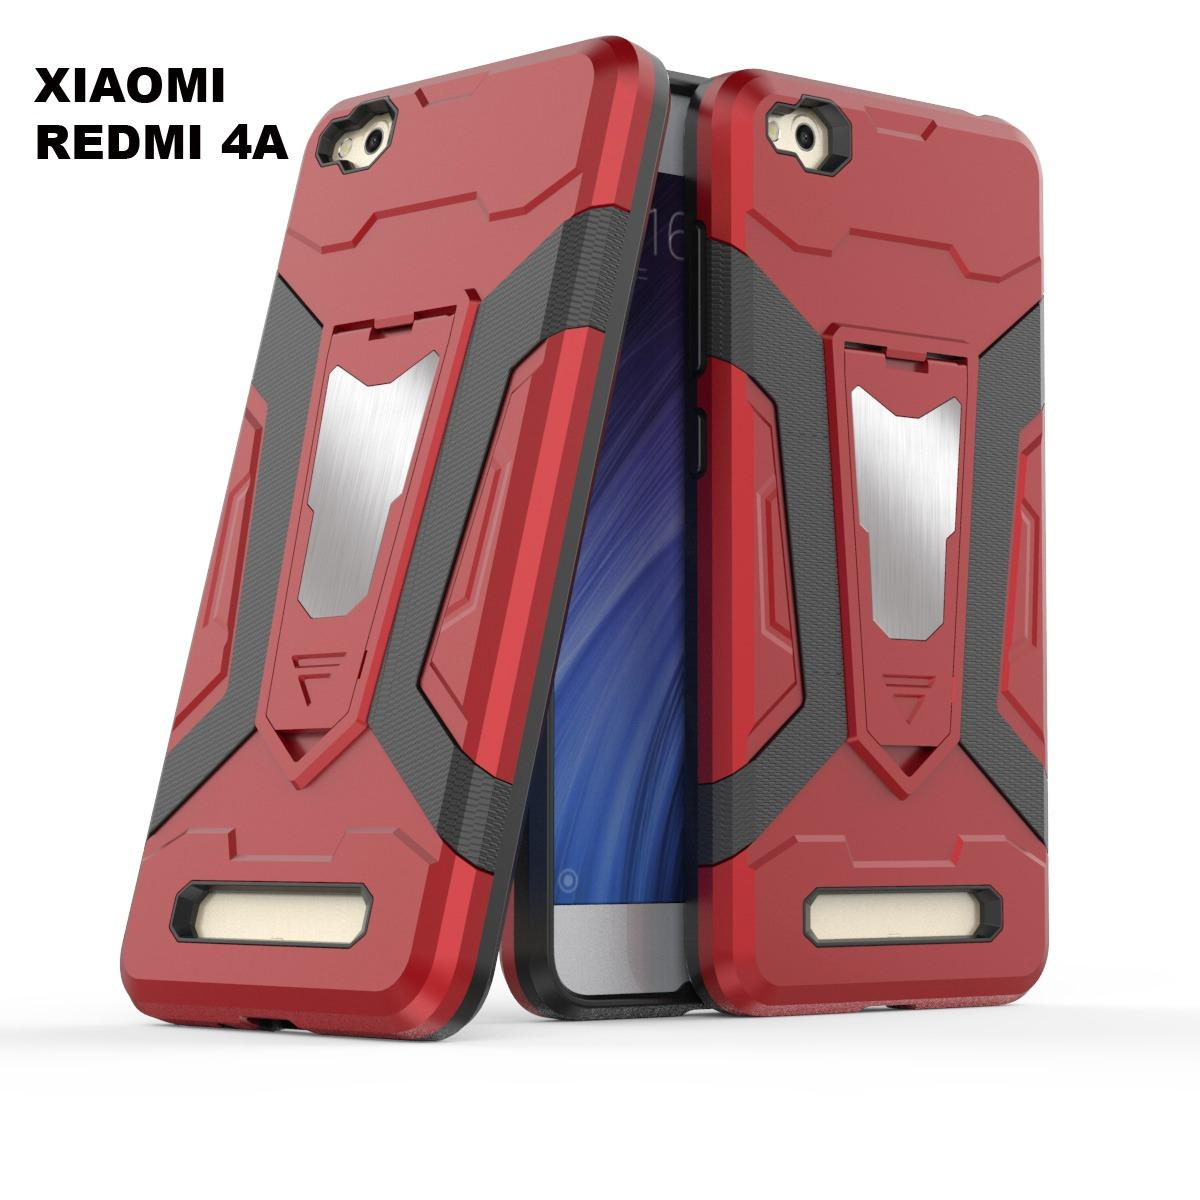 Case Iron Man for Xiaomi Redmi 4A Robot Transformer Ironman Limited - Merah